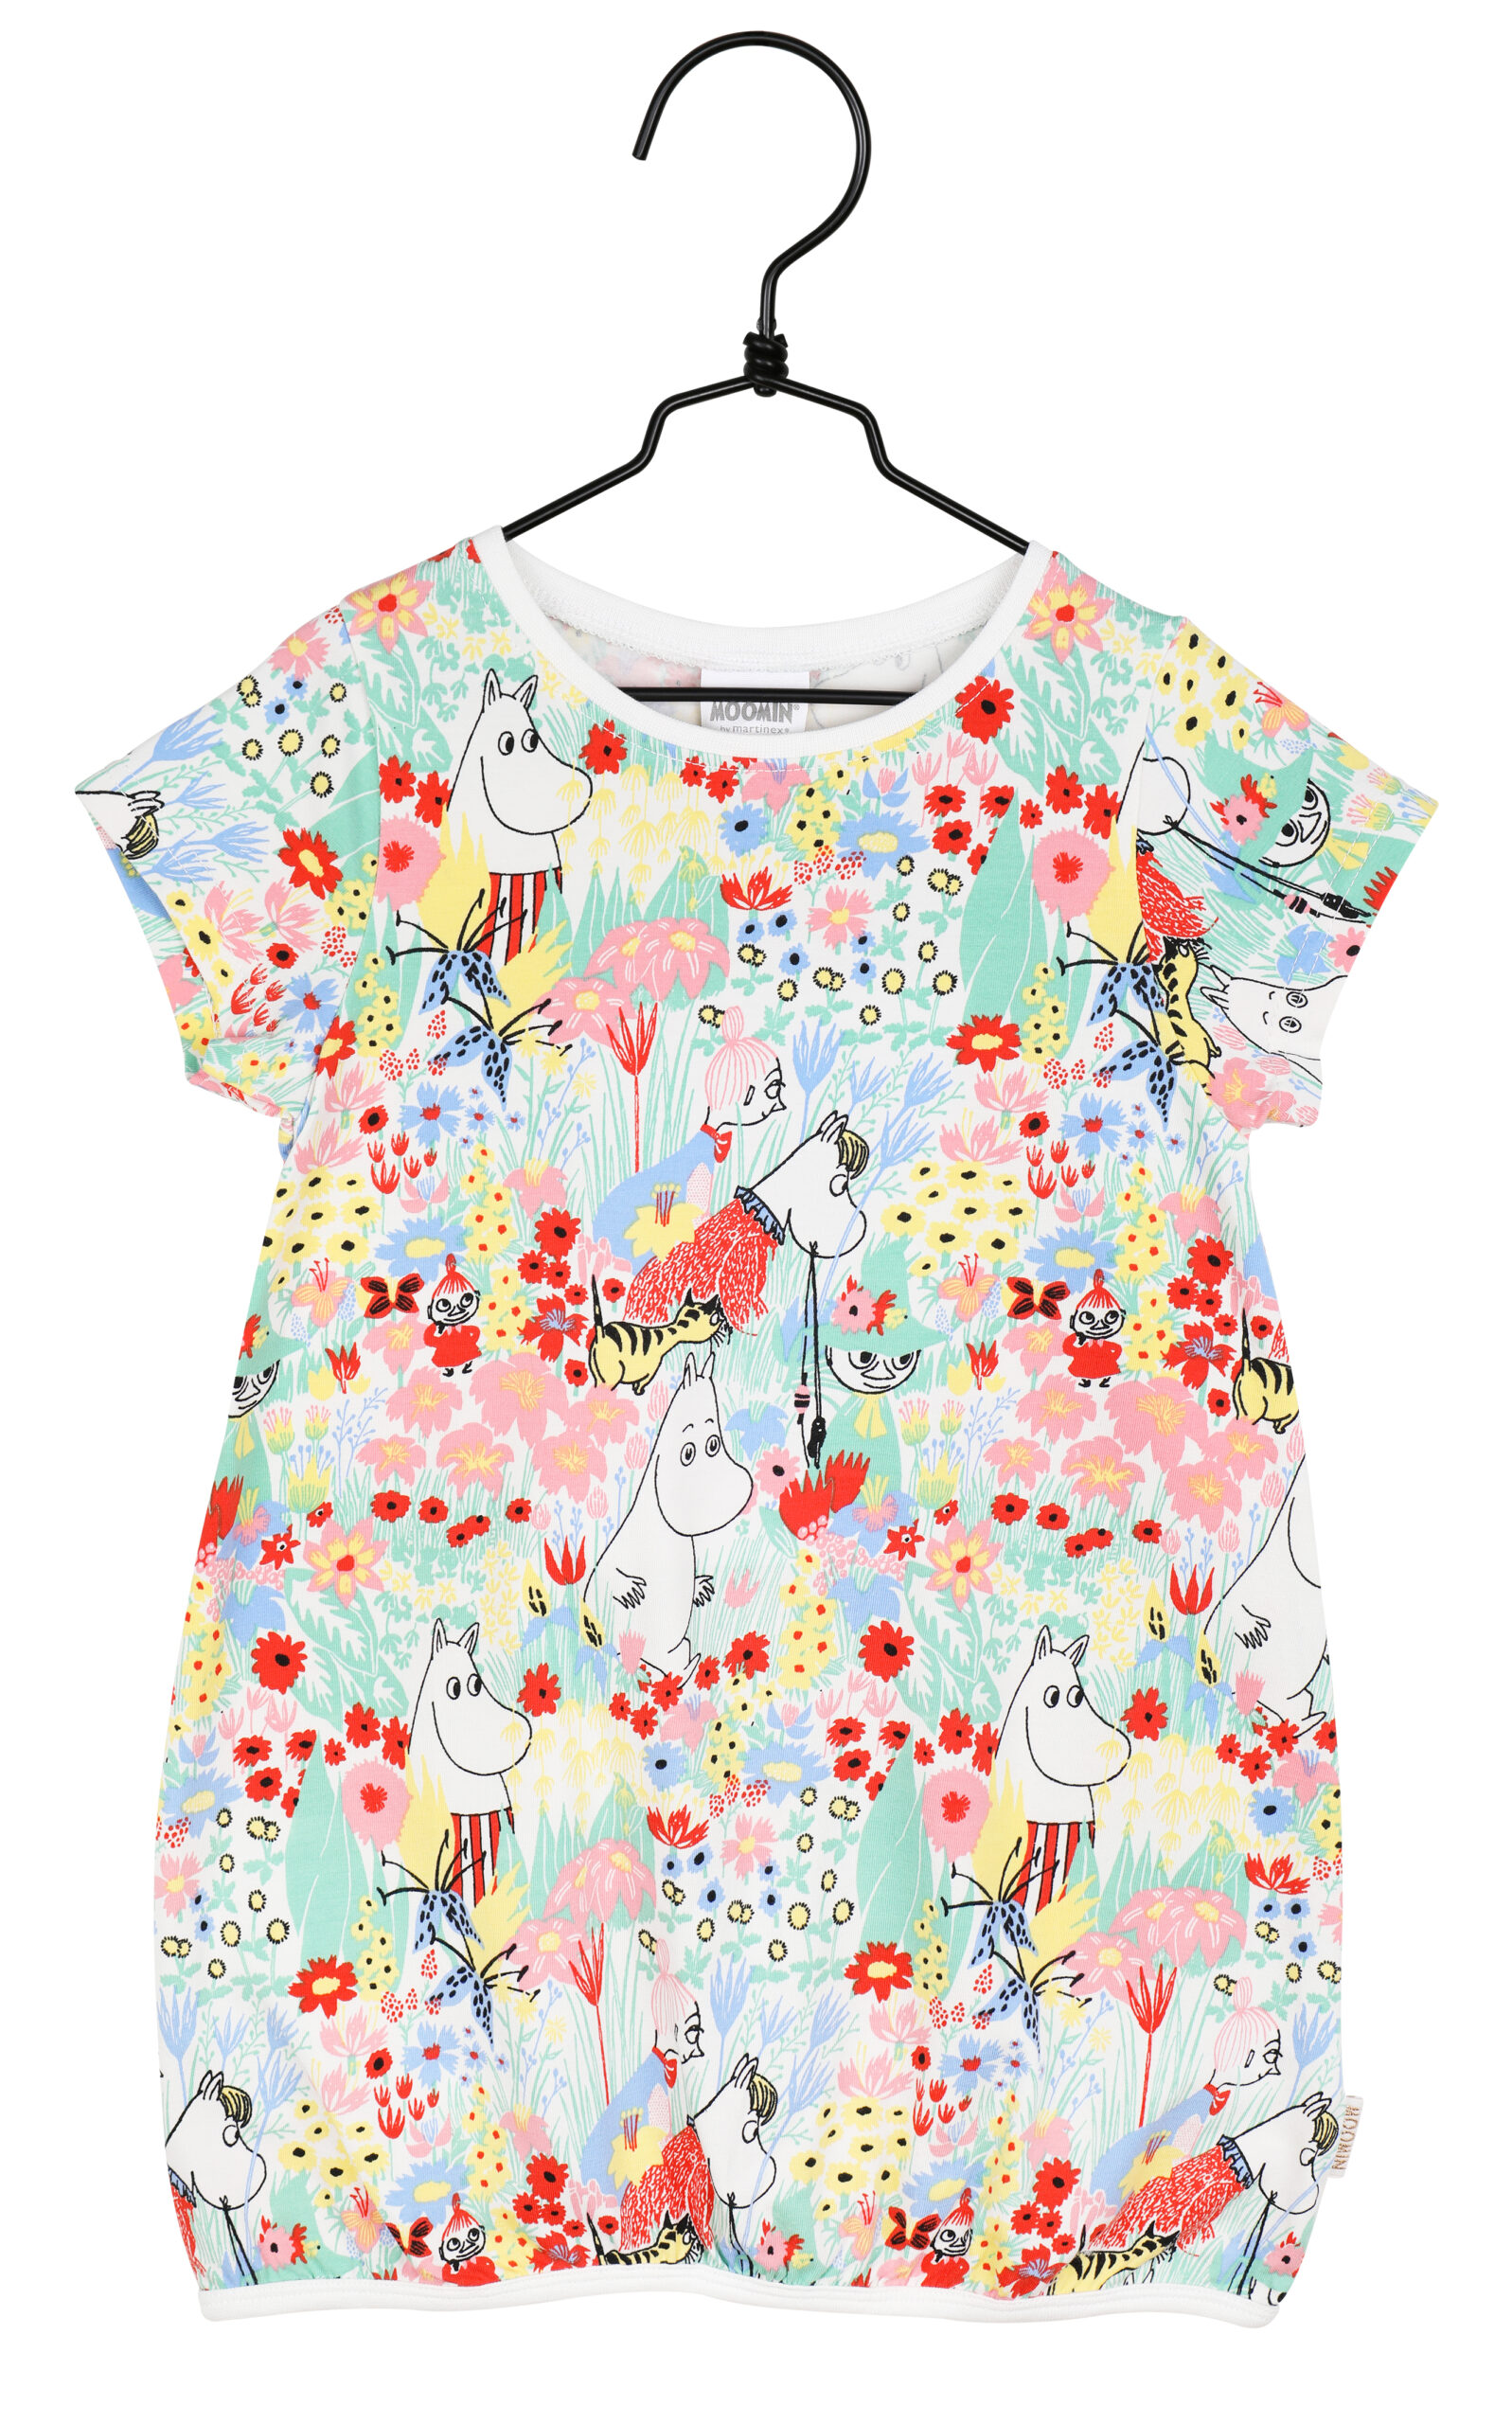 Martinex Moomin Buttercup Tunic Off-White